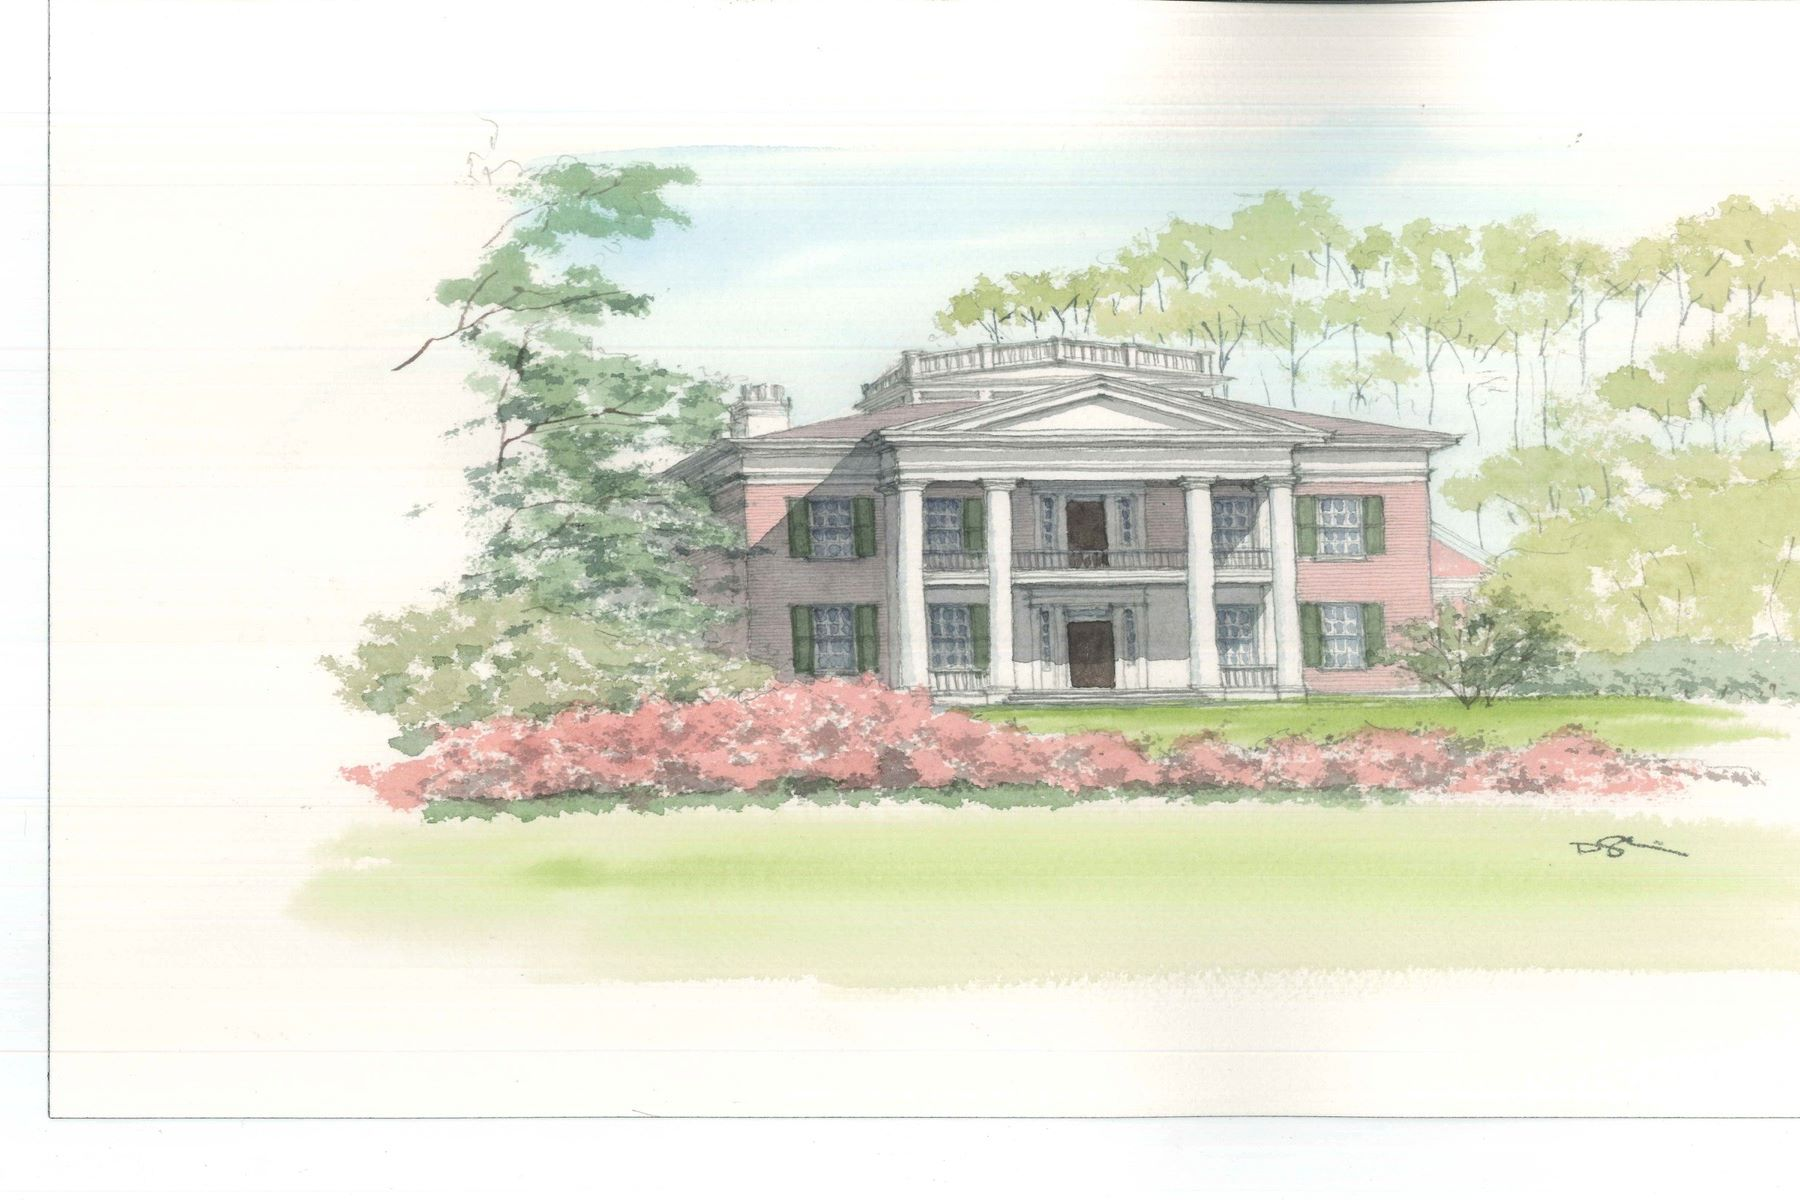 Villa per Vendita alle ore Stunning Colonial Home Built by award winning Cablik Enterprises 5146 Timber Ridge Road Marietta, Georgia, 30068 Stati Uniti